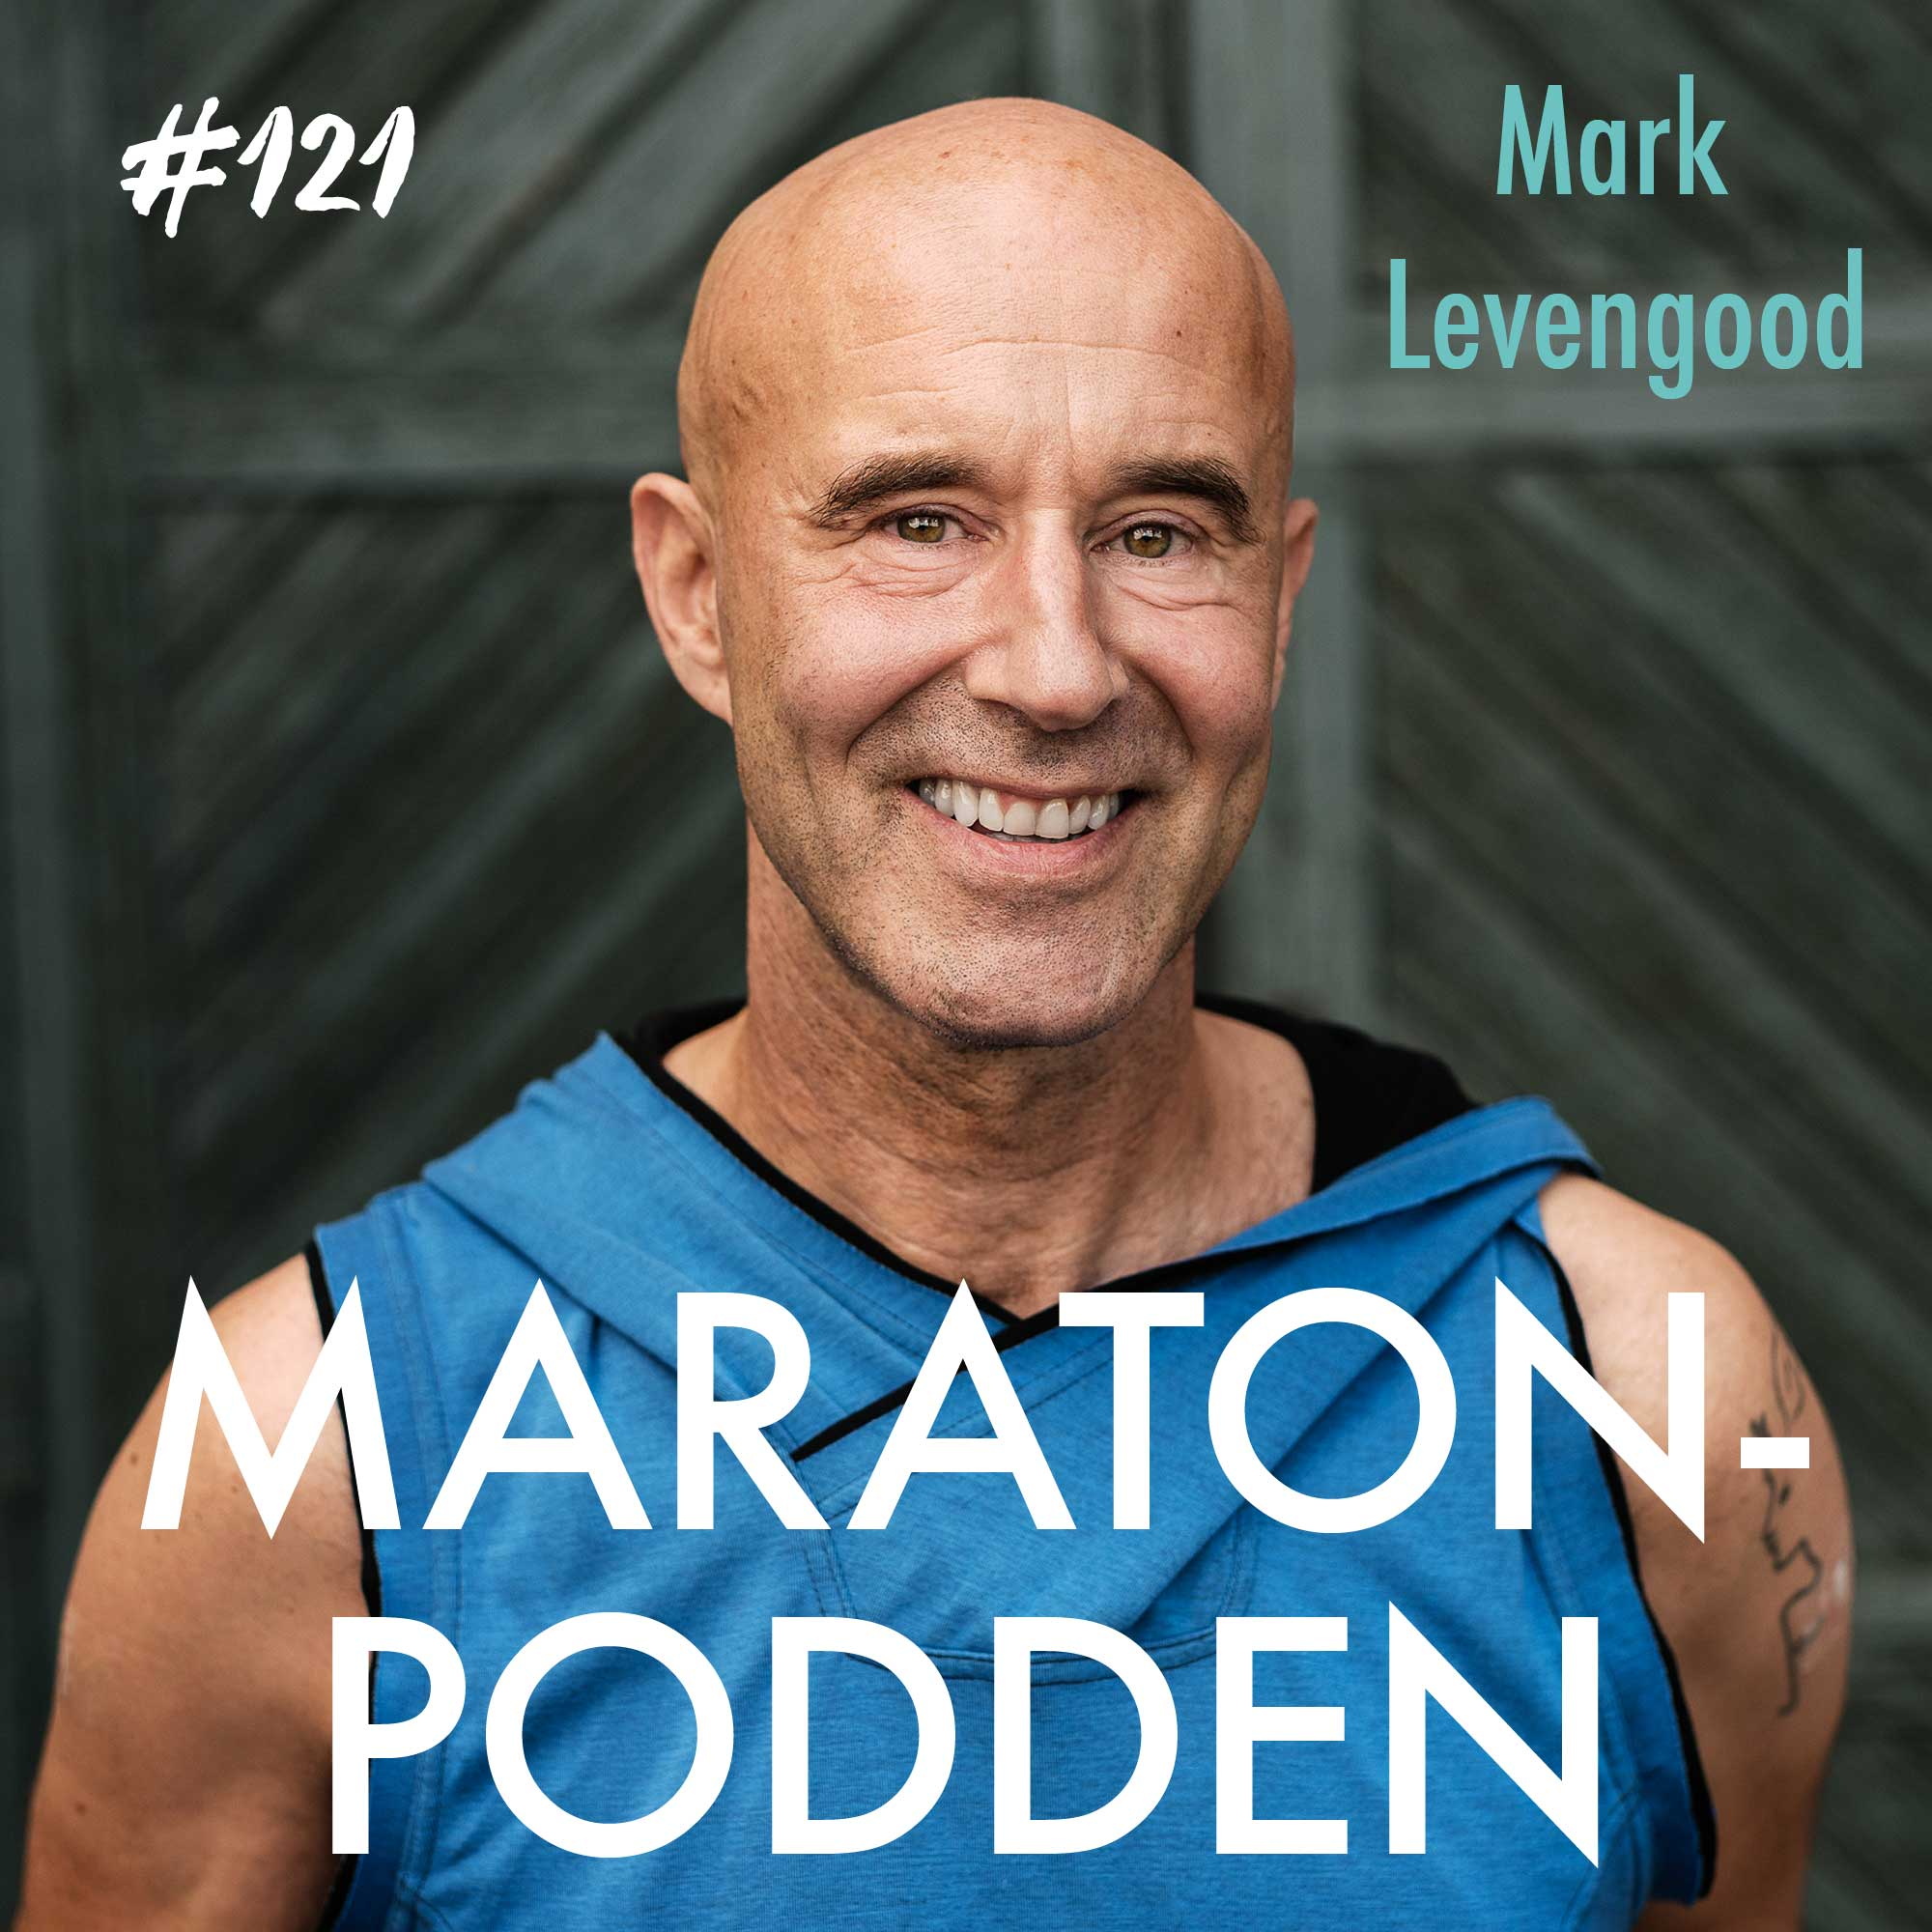 Mark Levengood